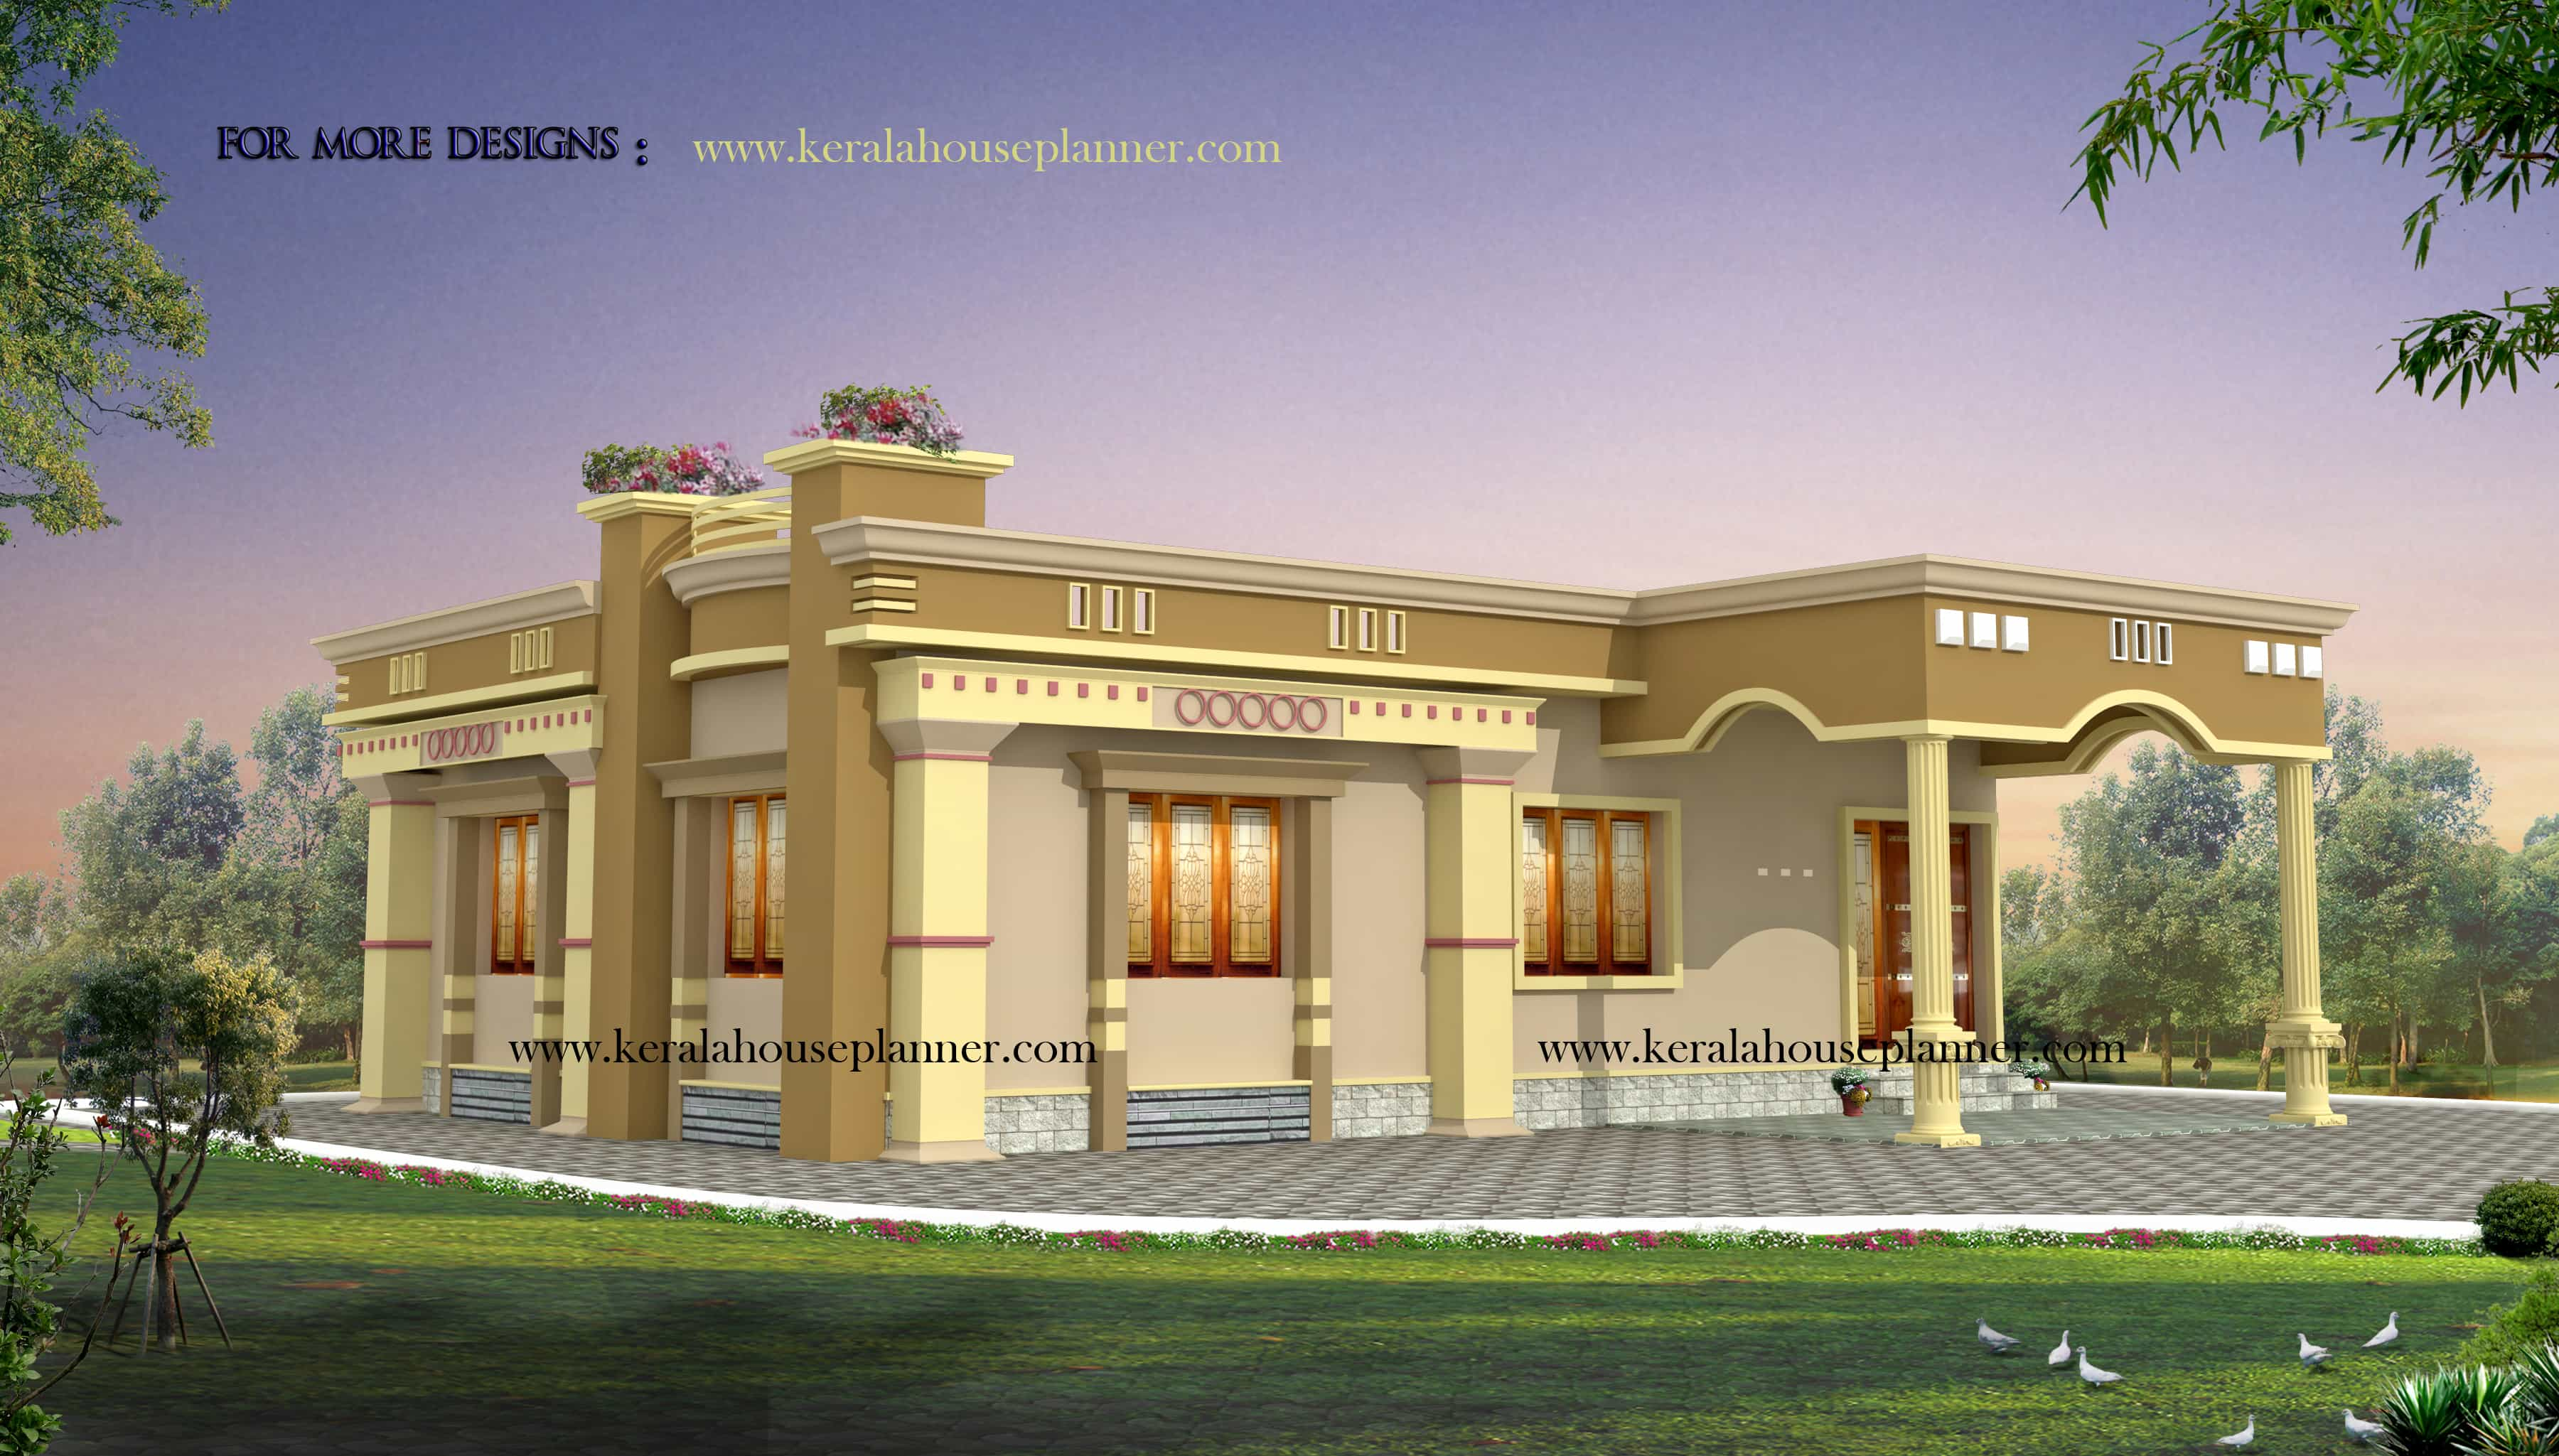 Kerala house plans 1200 sq ft with photos khp for Www kerala house designs com